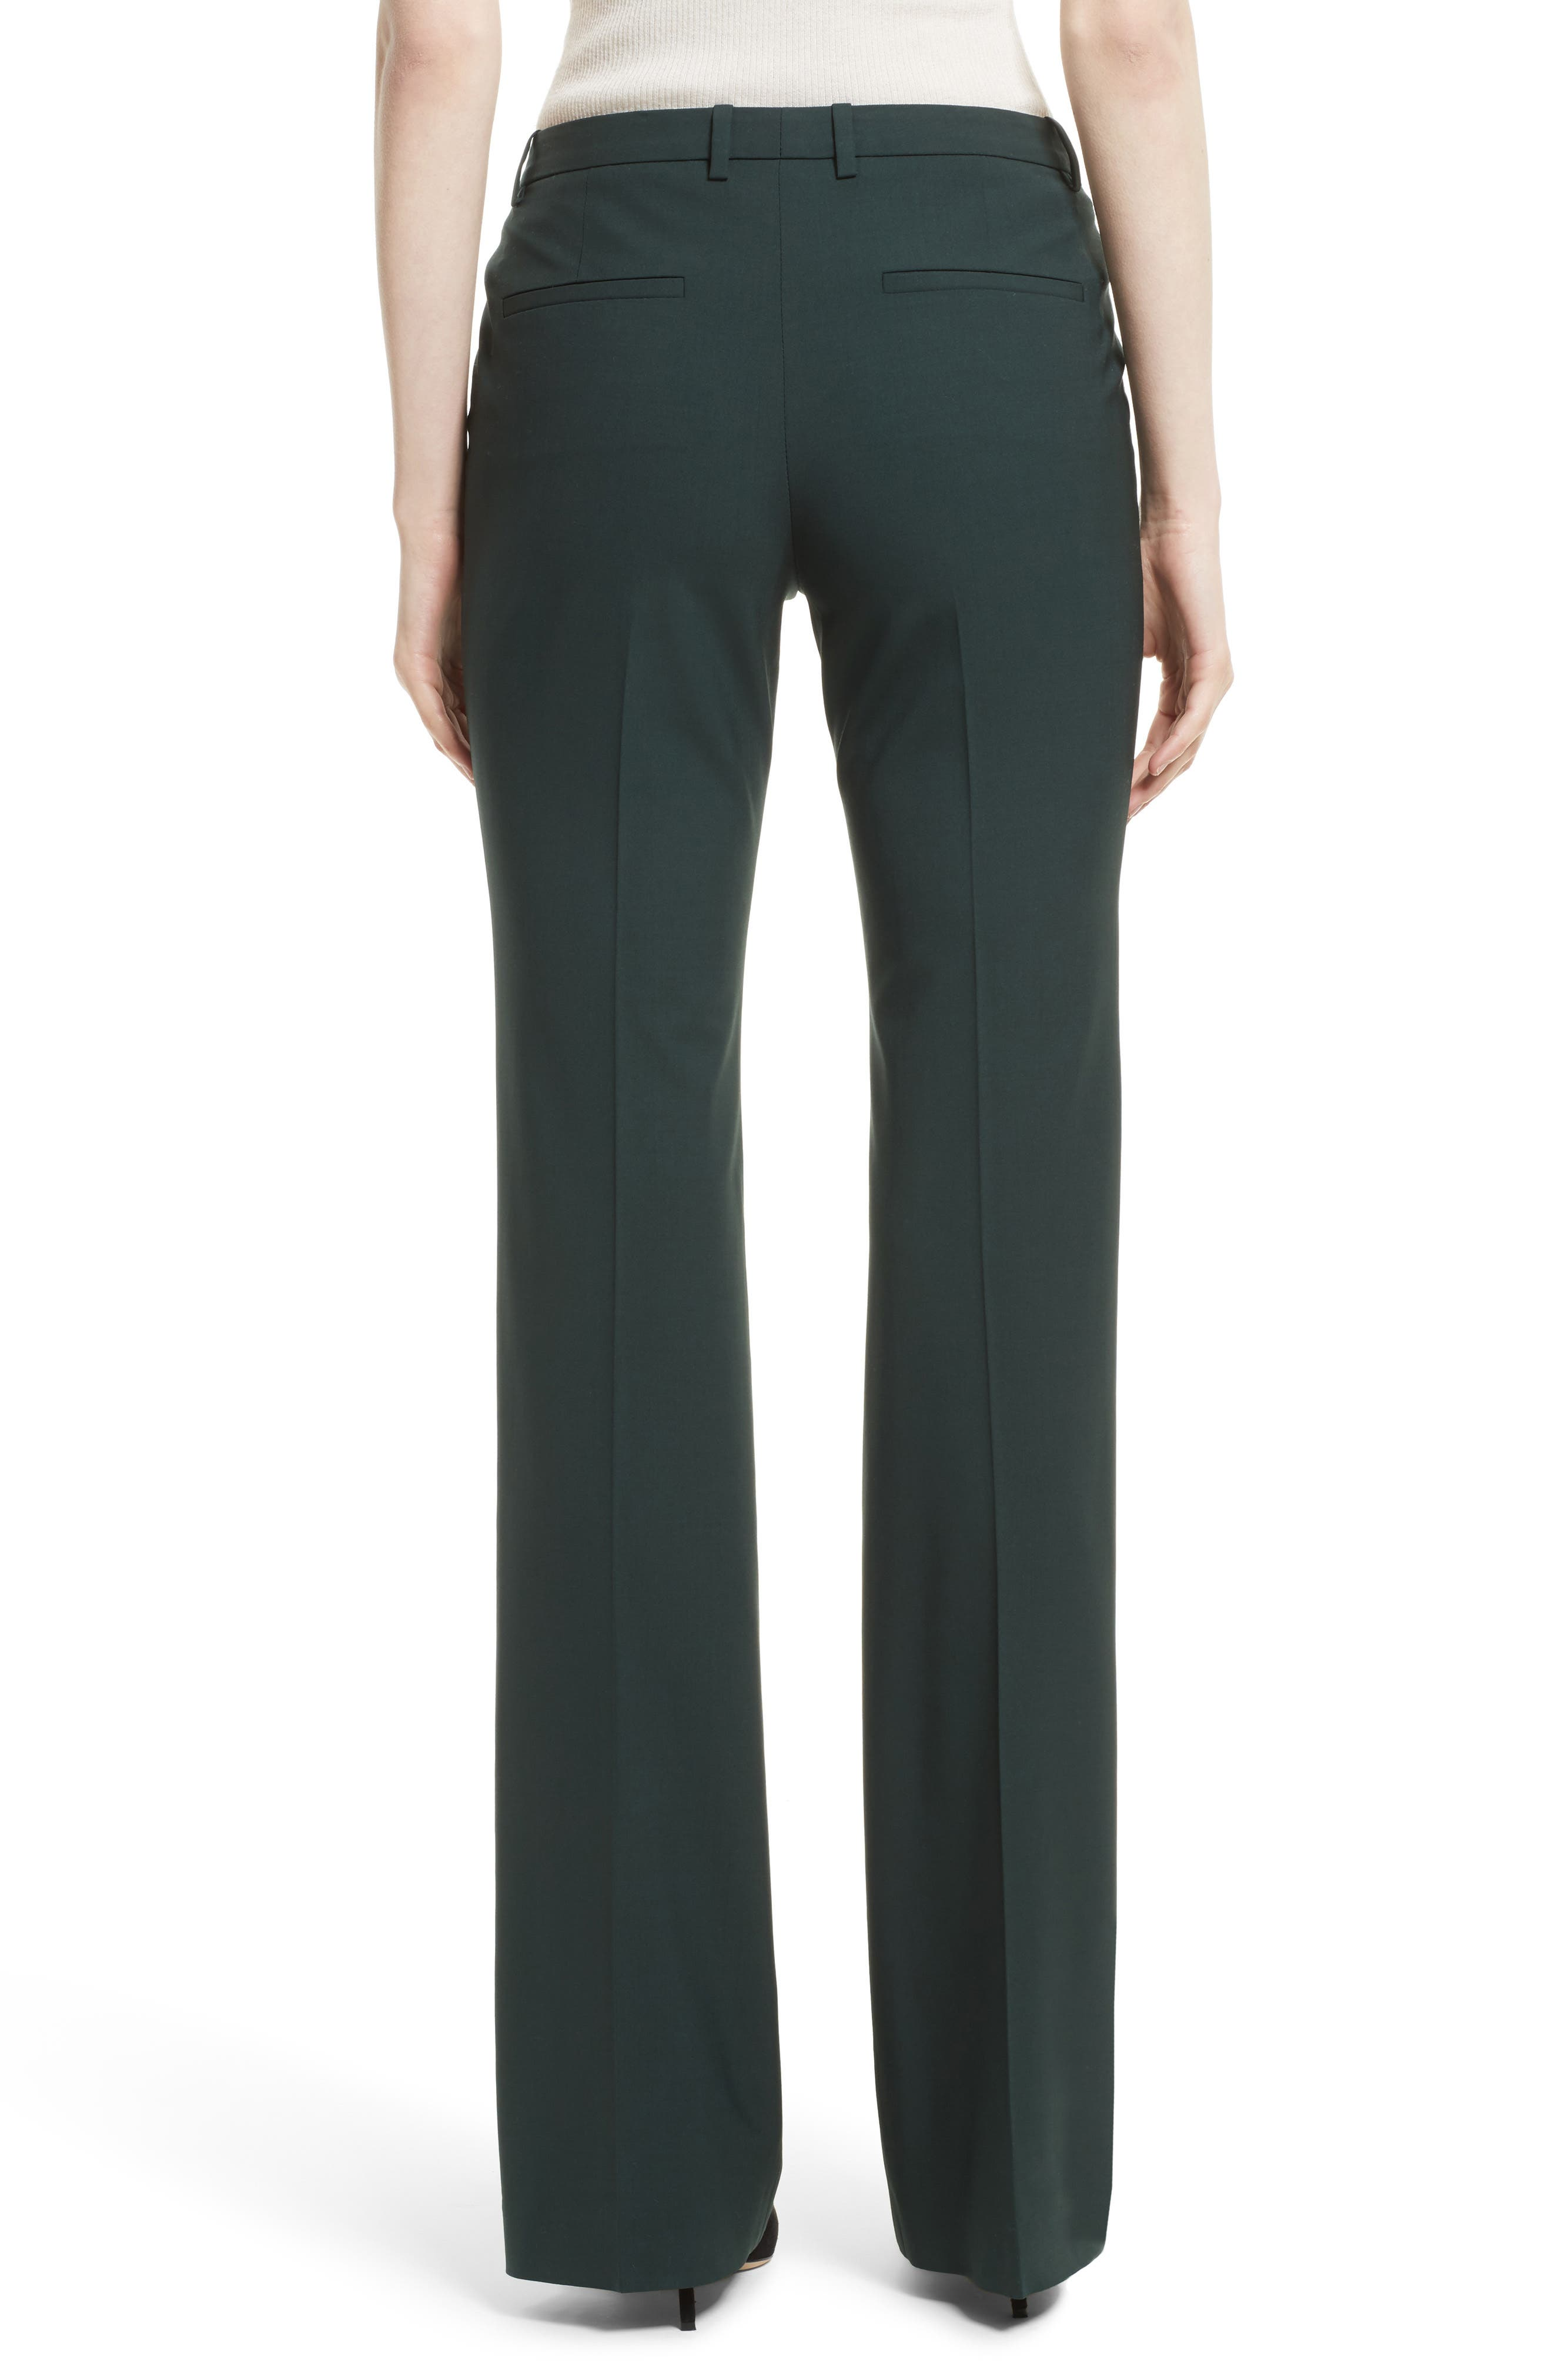 Demitria 2 Flare Leg Stretch Wool Pants,                             Alternate thumbnail 2, color,                             392